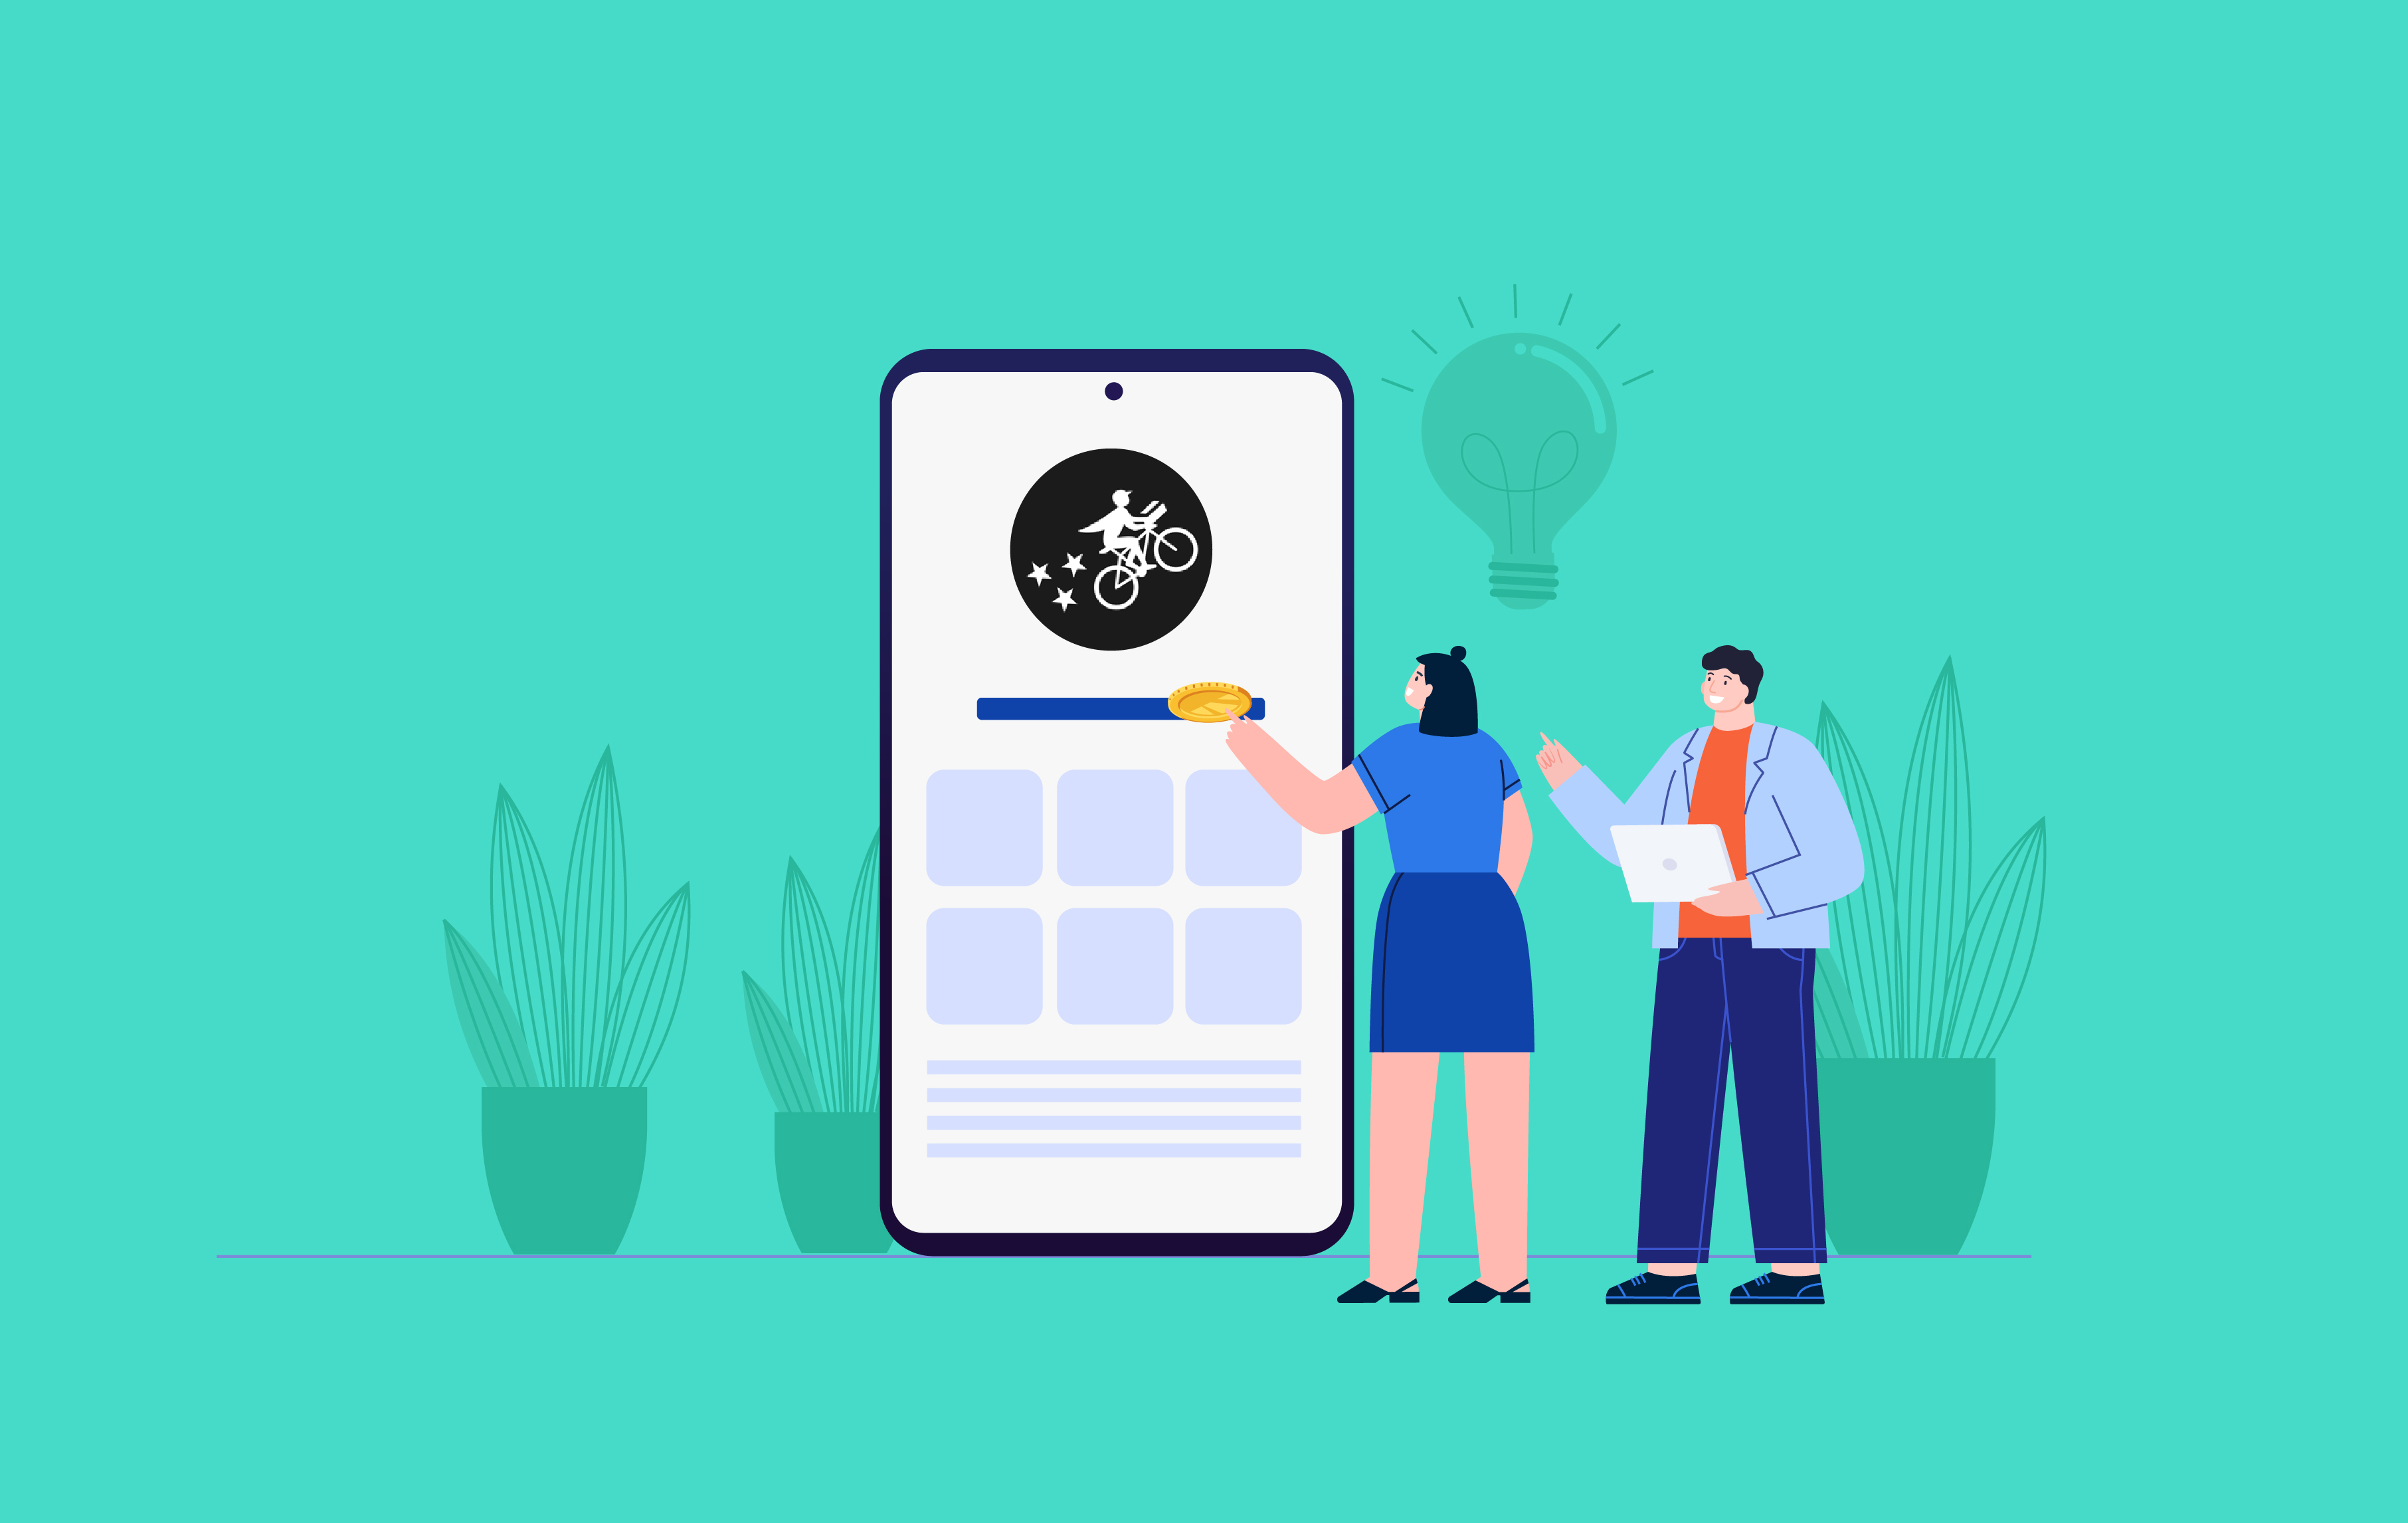 How Much Does it Cost to Build an App Like Postmates?